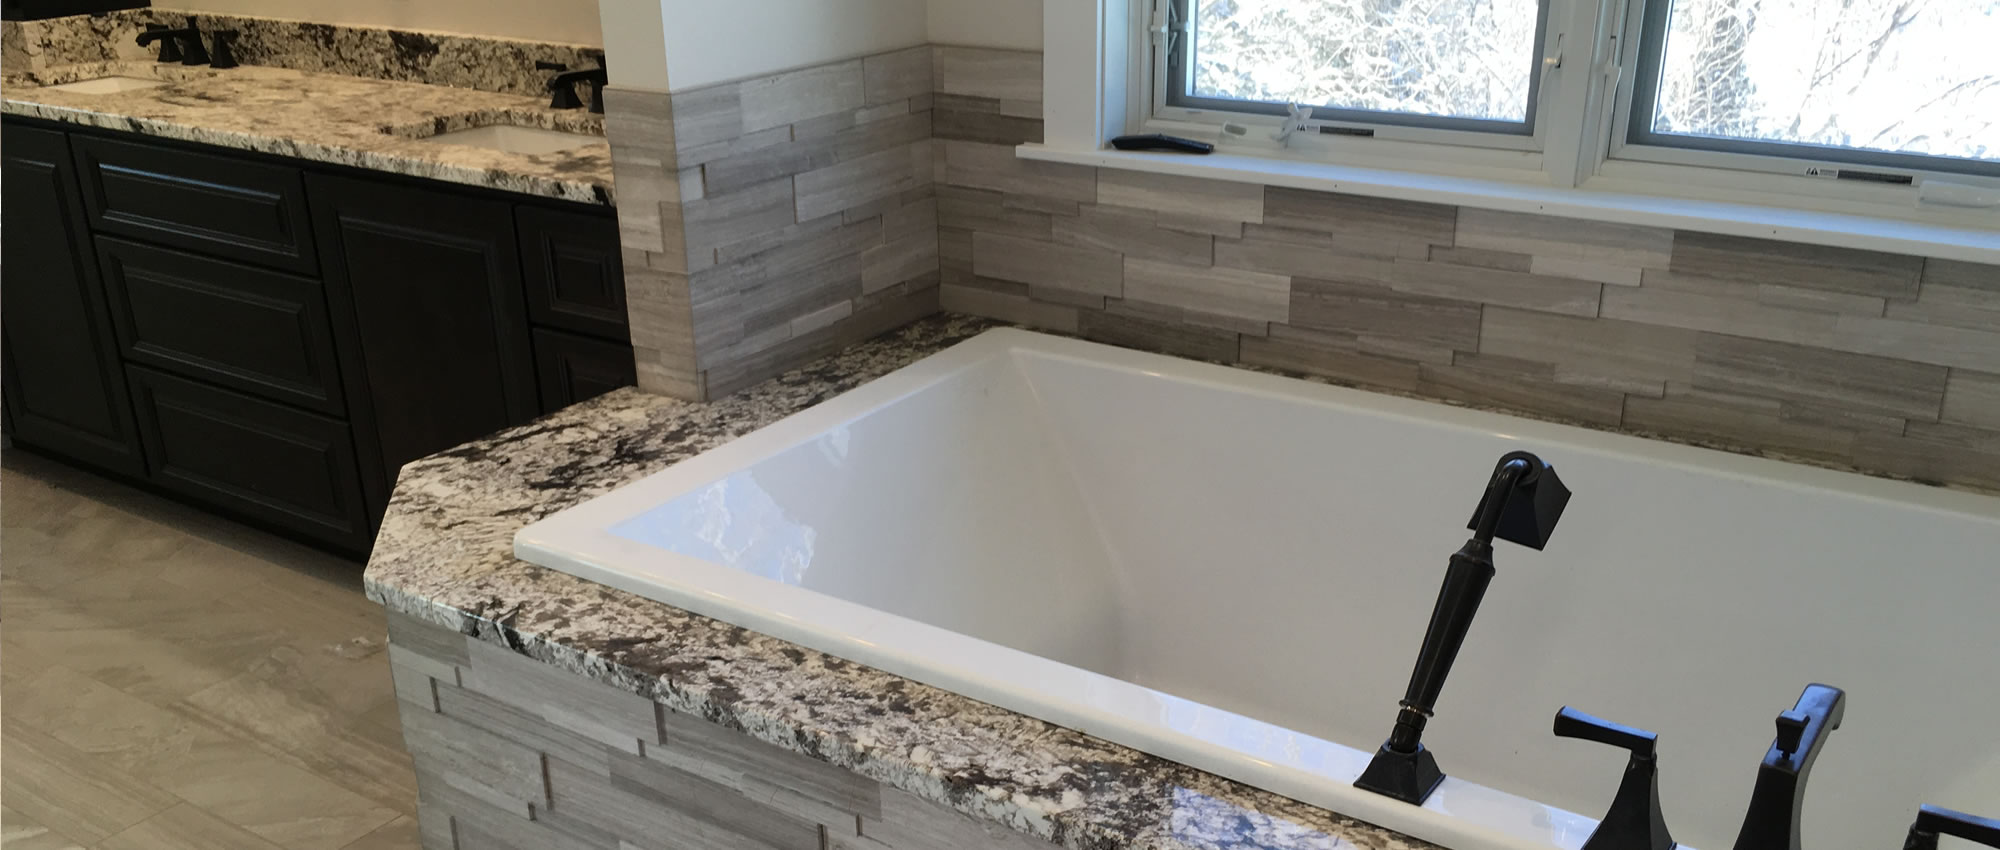 Servais Tile and Stone